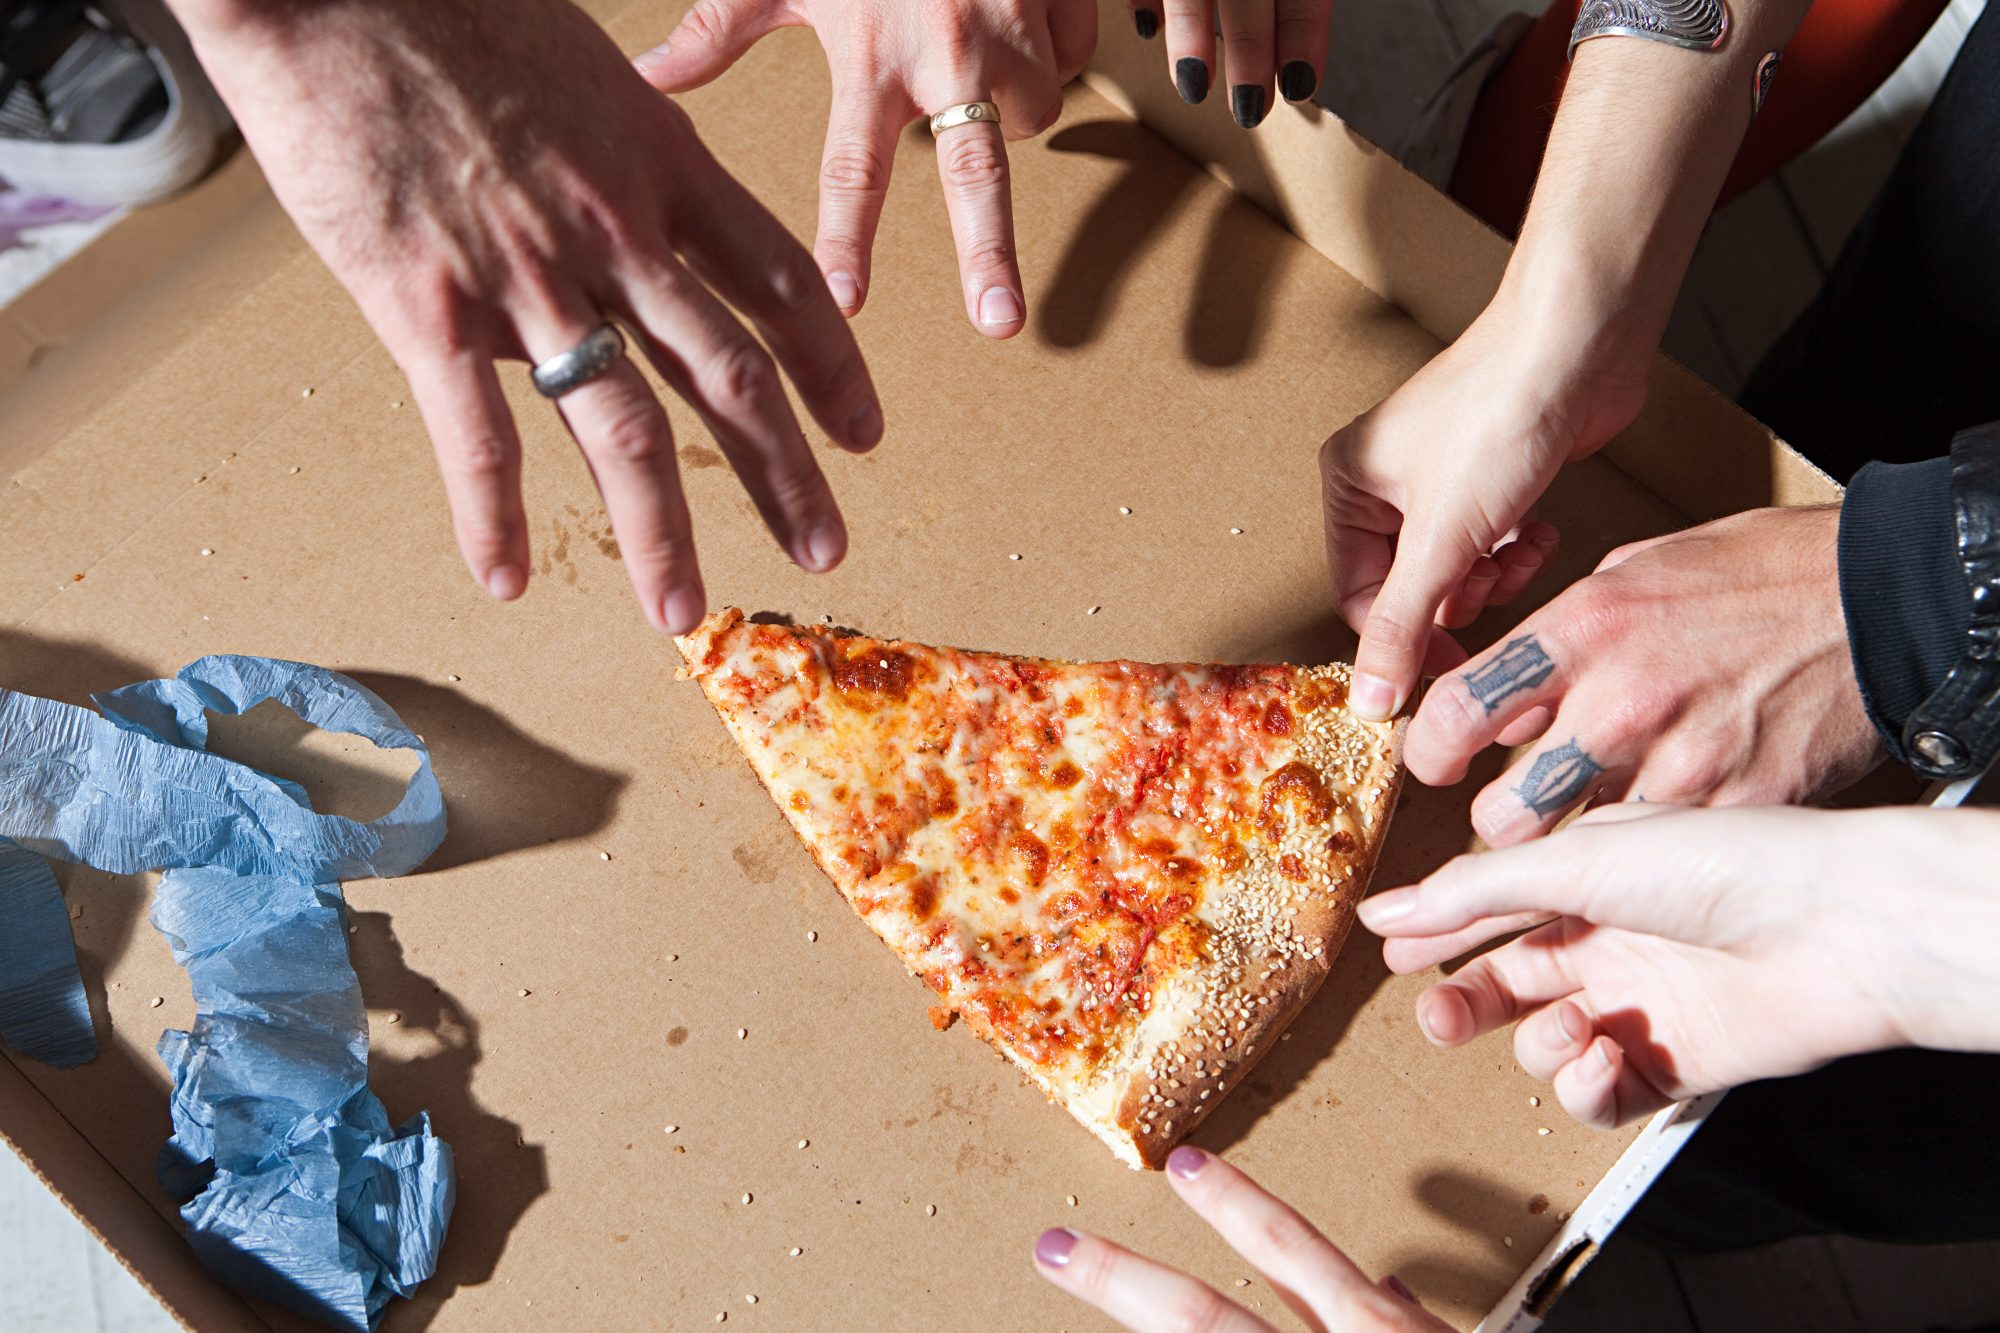 People taking slice of pizza at party